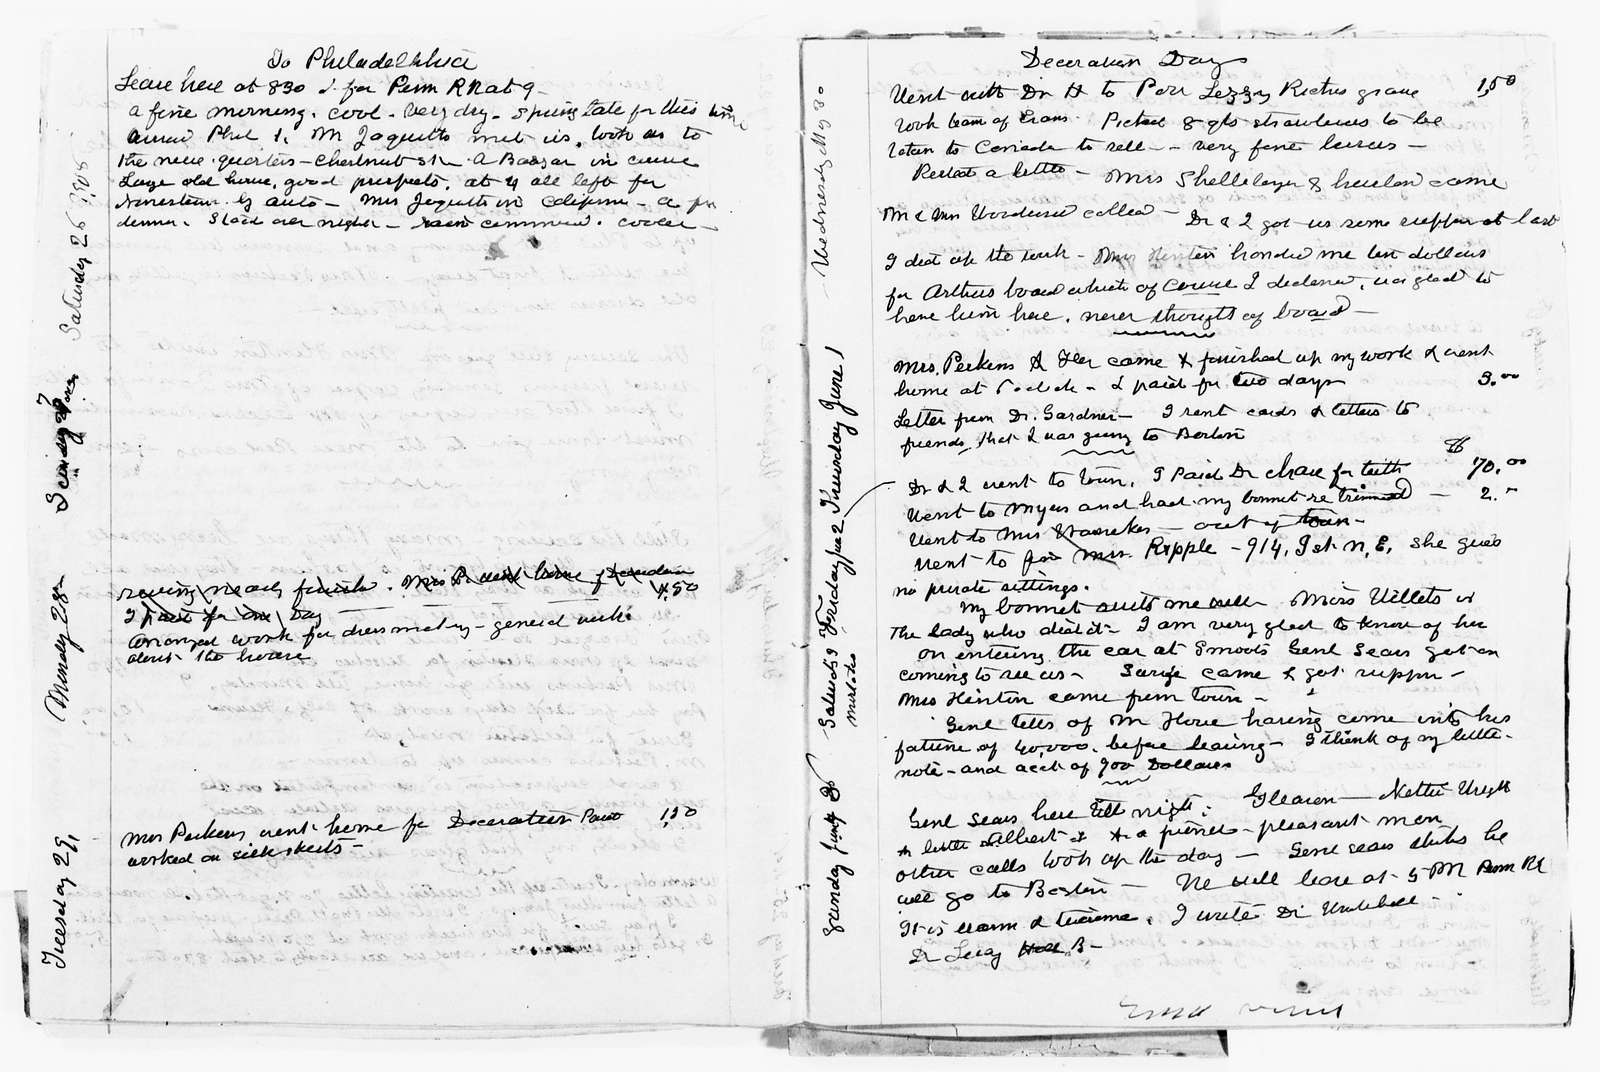 Clara Barton Papers: Diaries and Journals: 1906, Jan.-Aug.